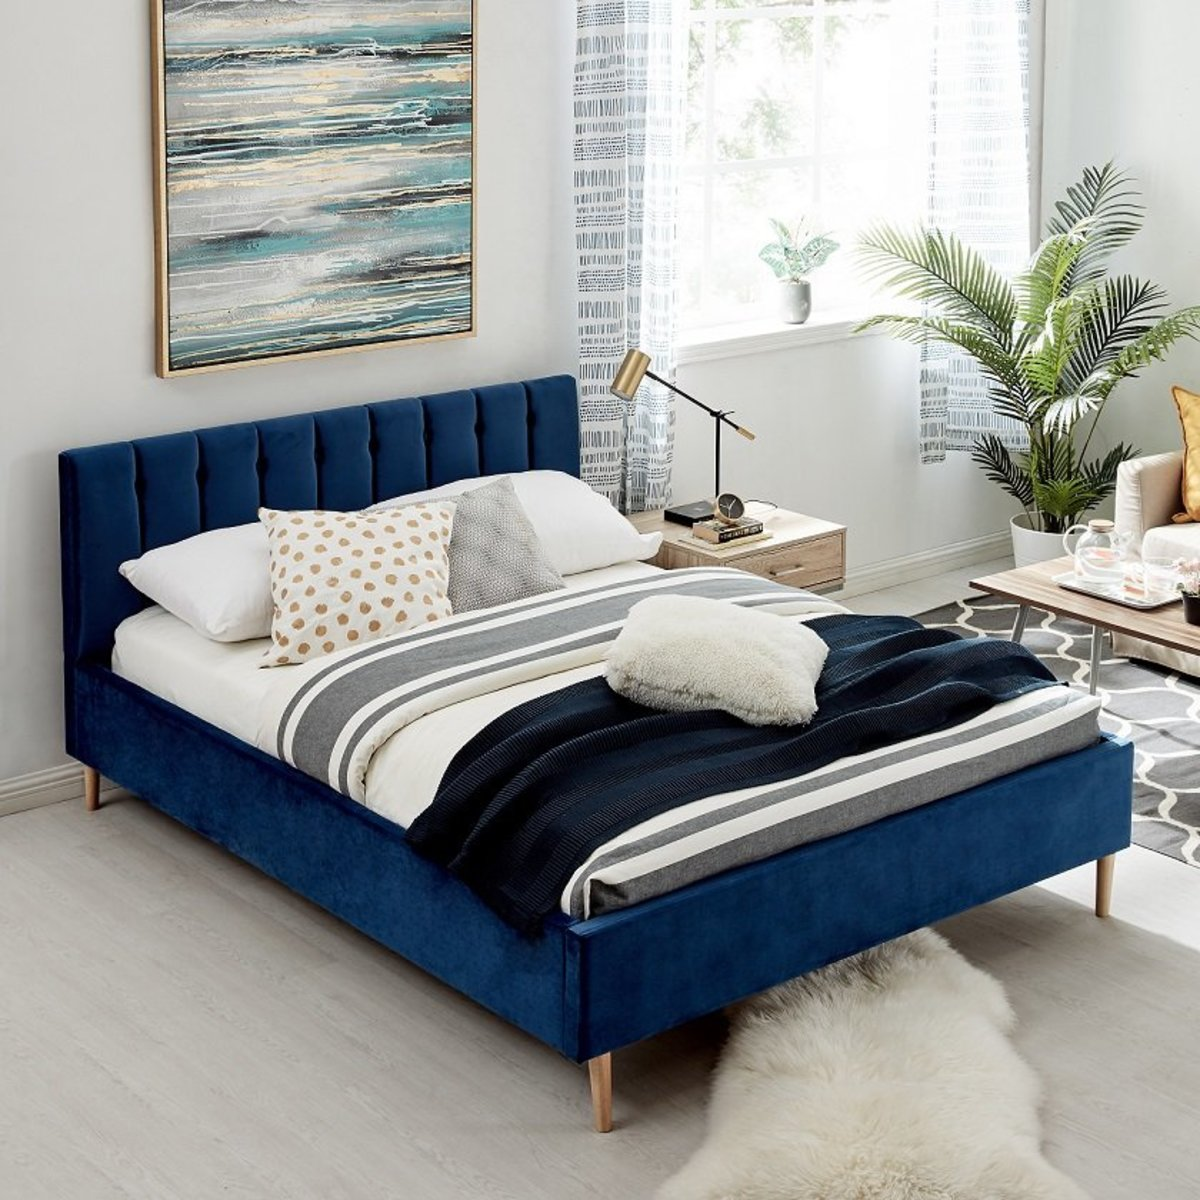 1.5M*1.9M BED IN NAVY BLUE COLOR WITH VELVET FABRIC